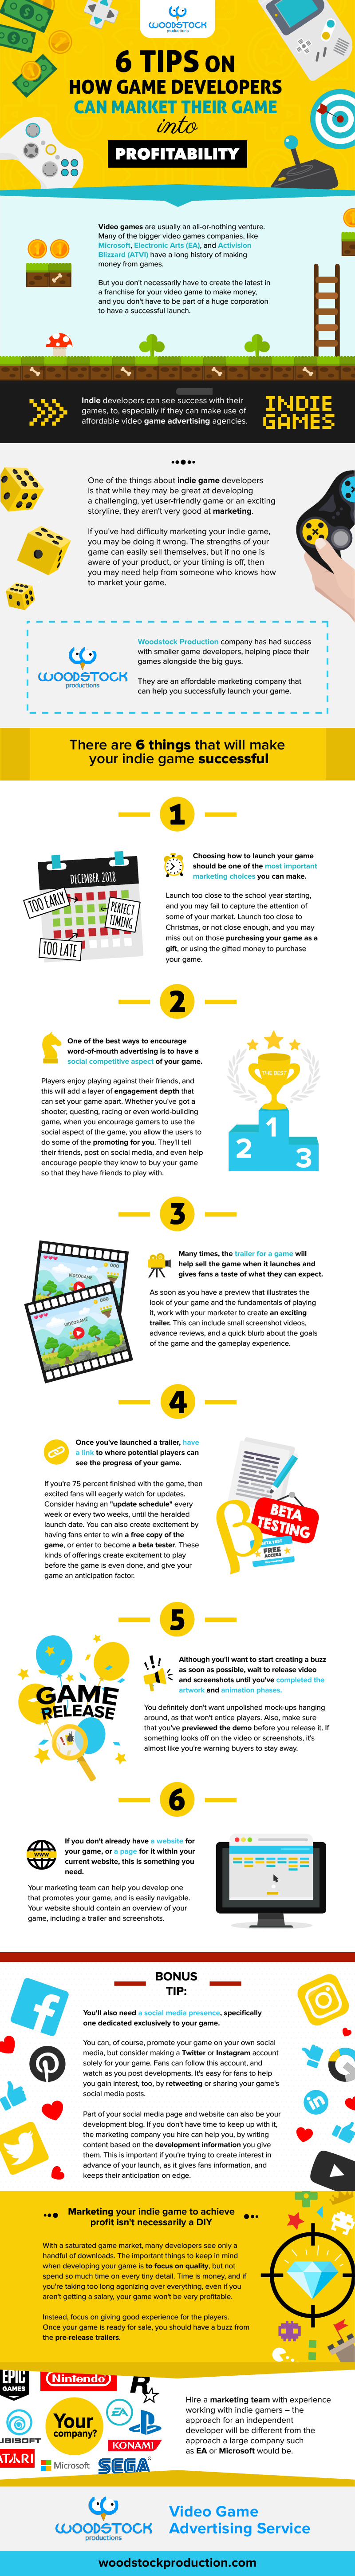 tips on how game developers market their games into profitability infographic